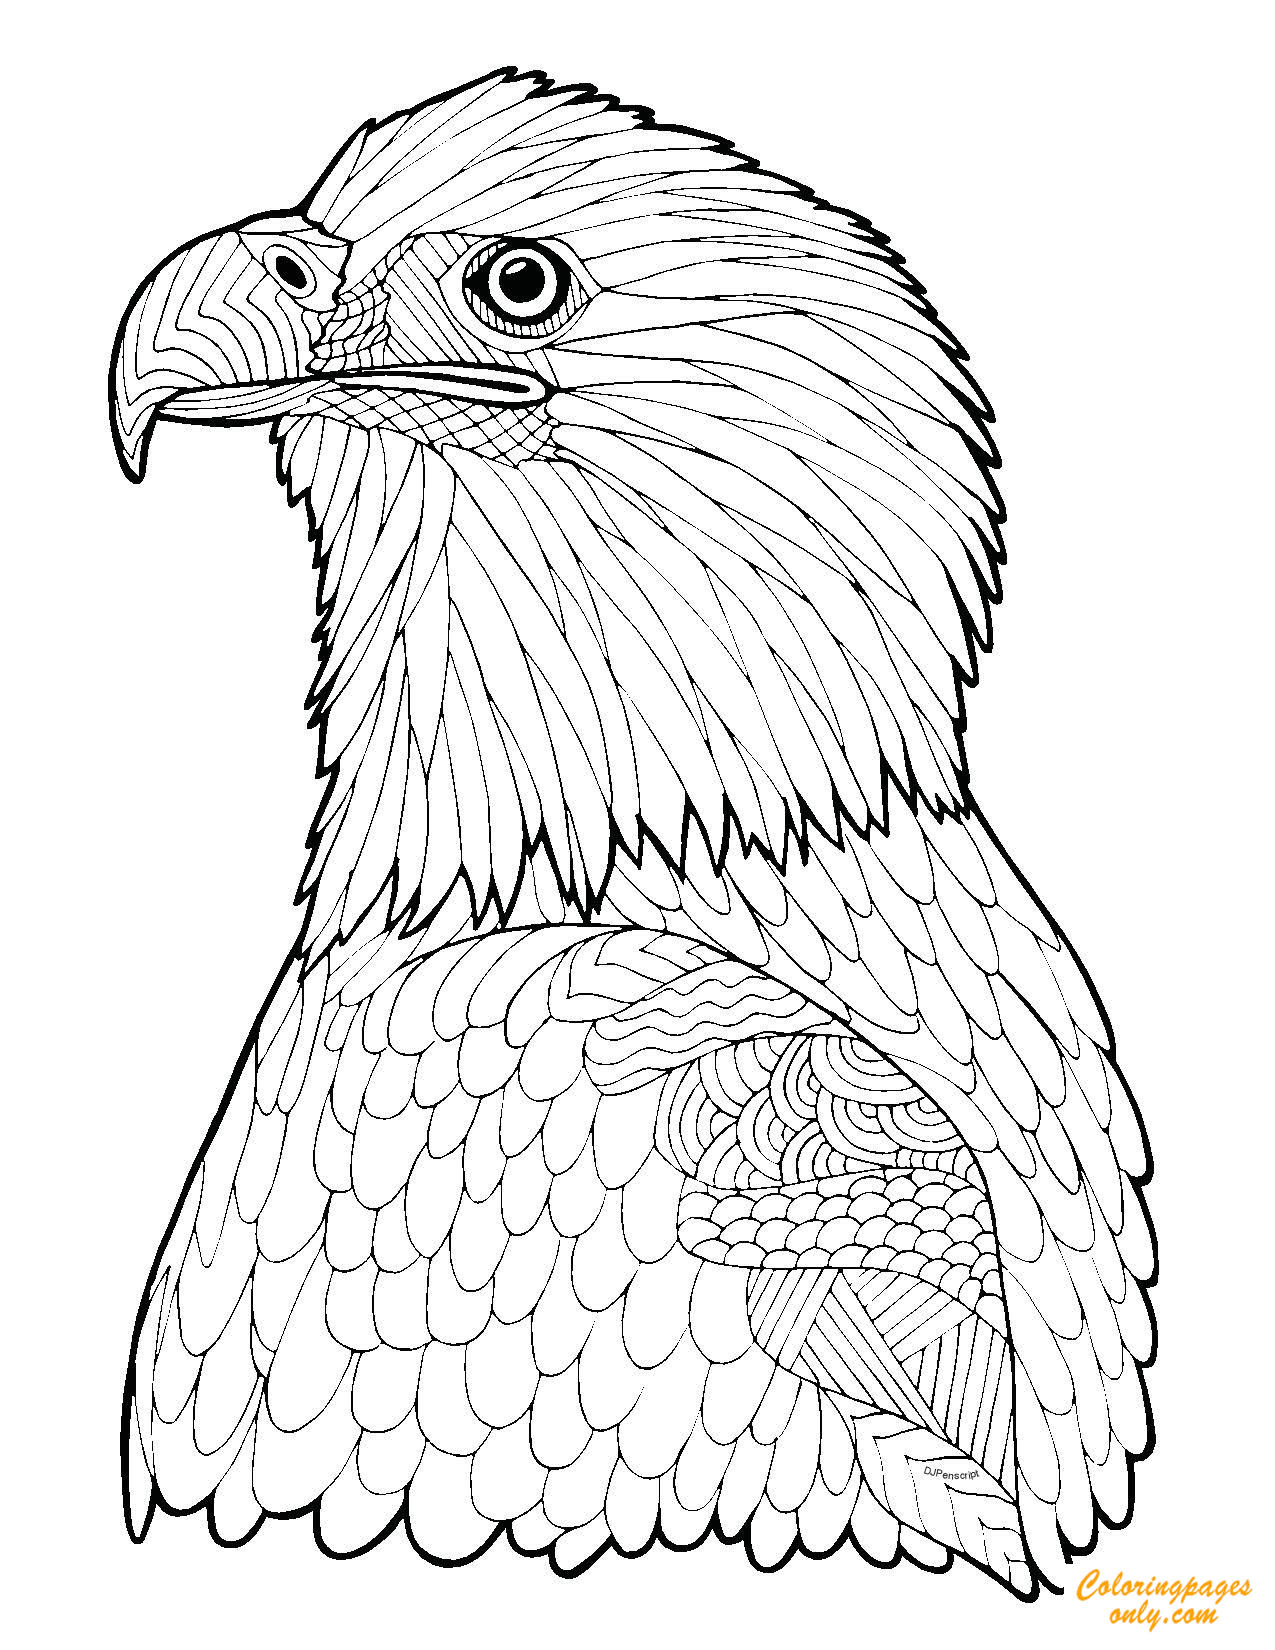 coloring pages eagle bald eagle in flight coloring page free printable coloring eagle pages